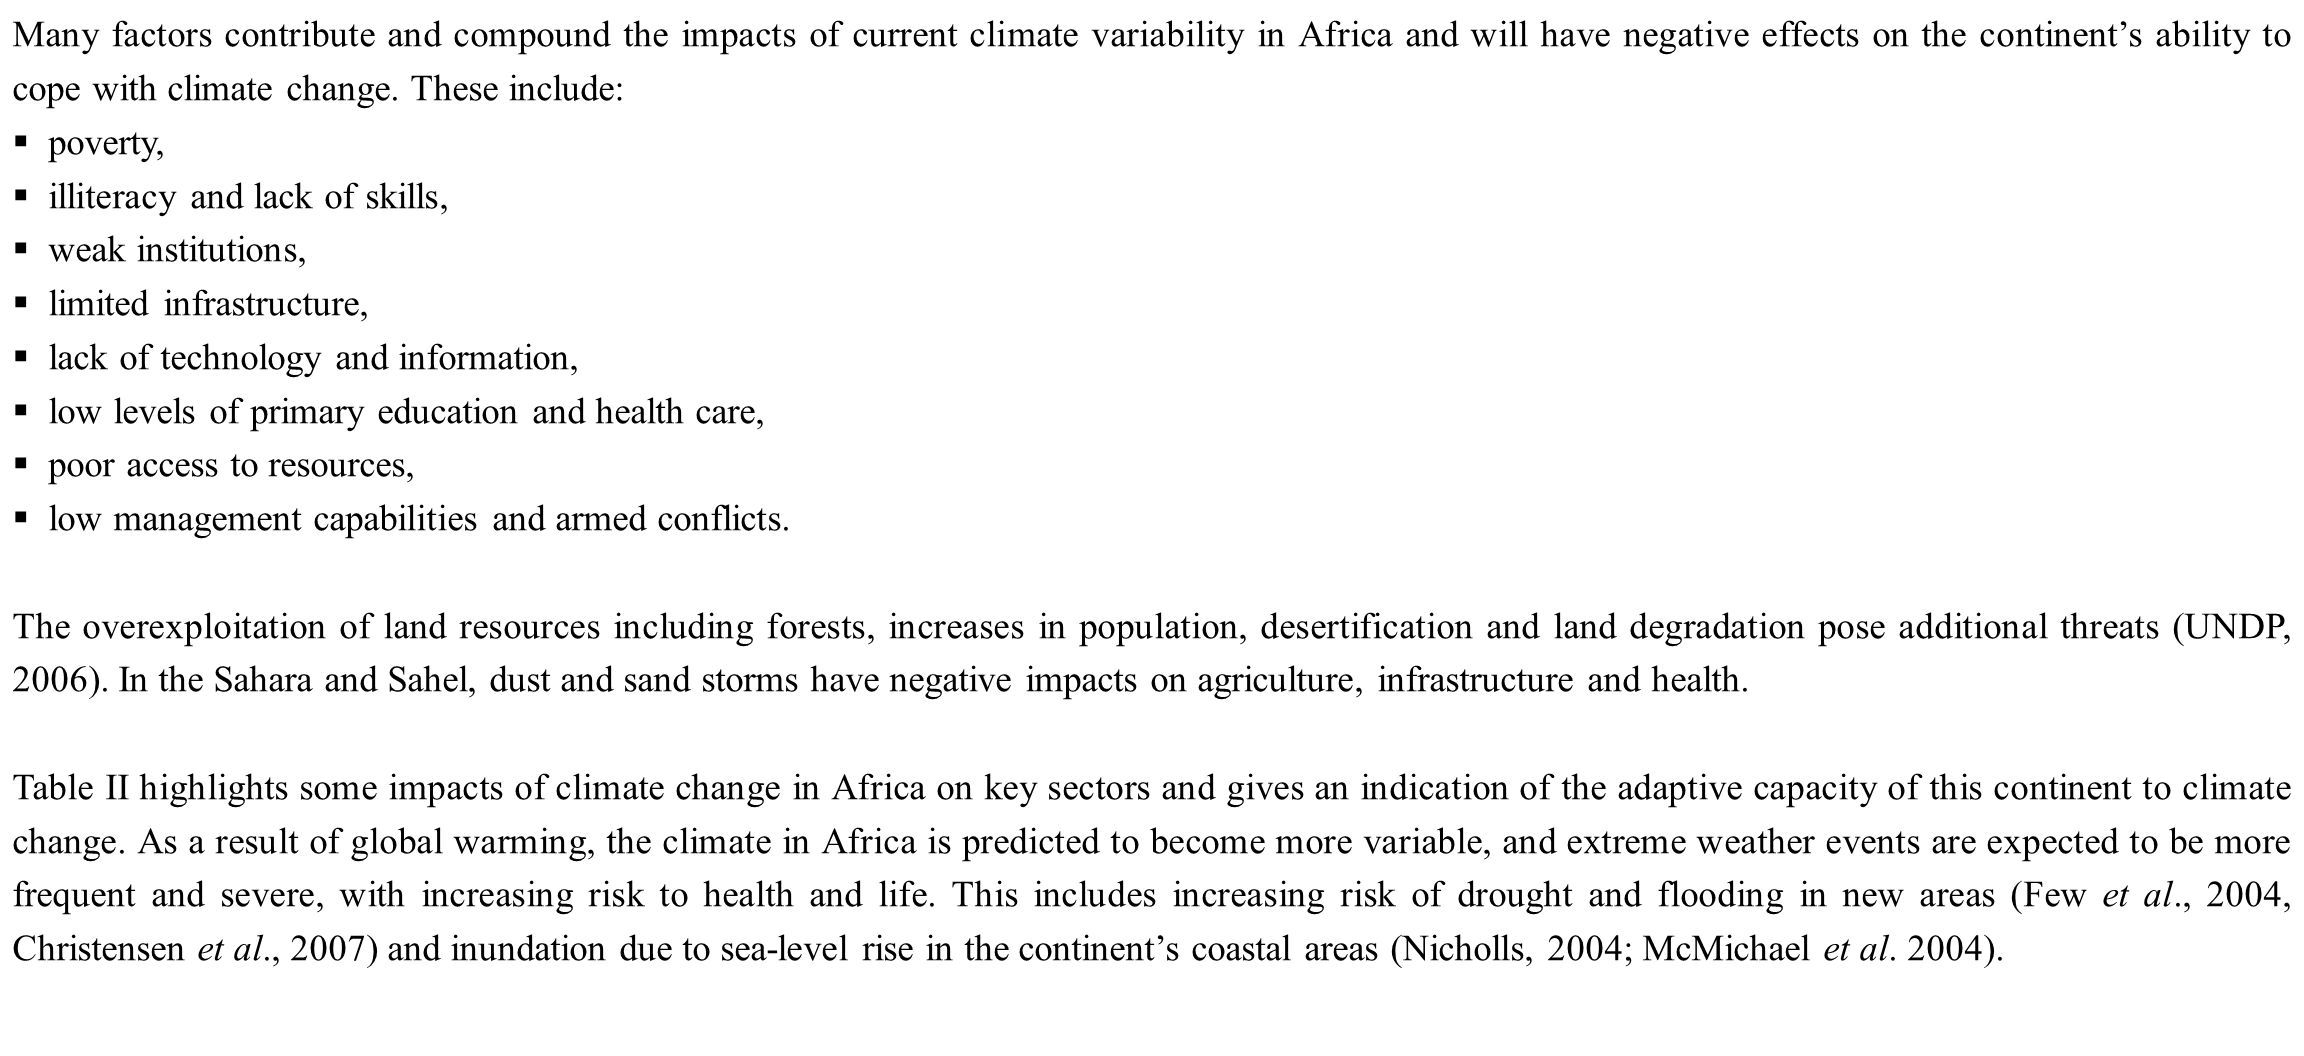 Many factors contribute and compound the impacts of current climate variability in Africa and will have negative effects on the continent's ability to cope with climate change. These include: